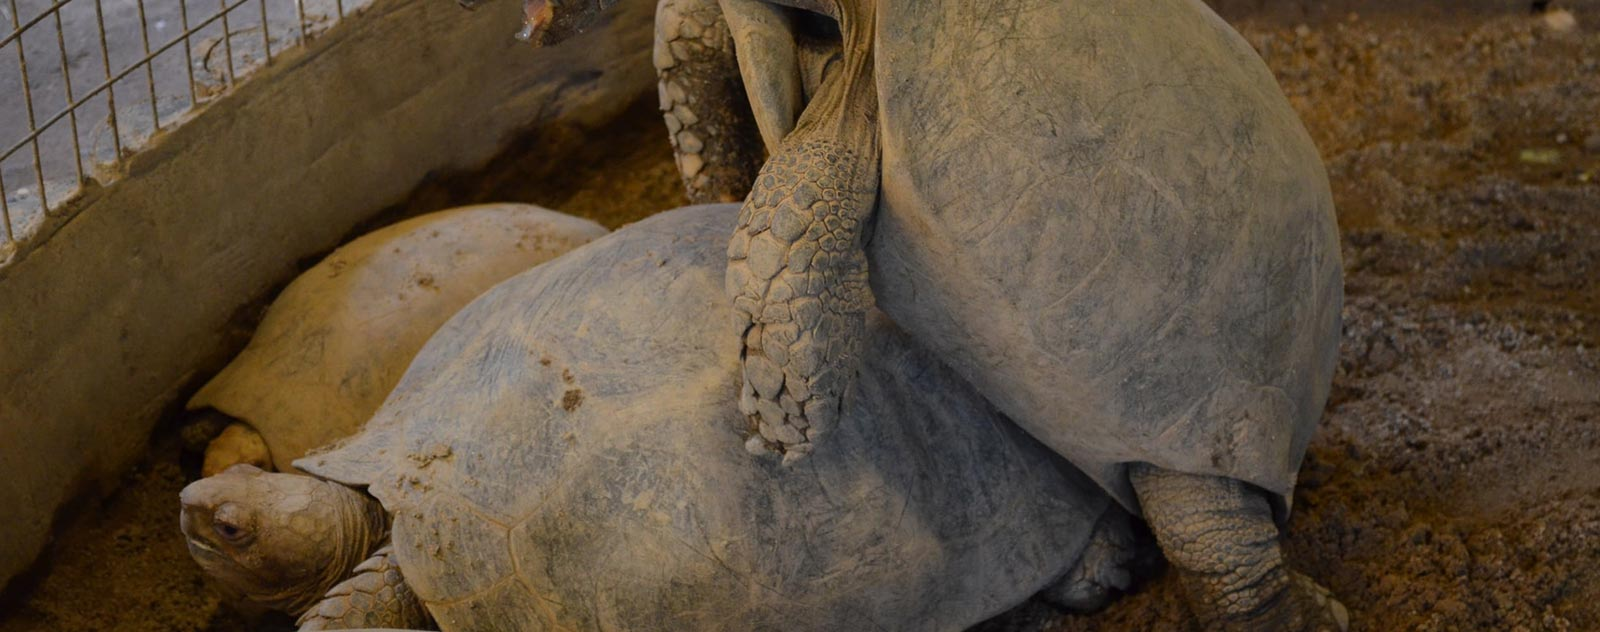 tortue-reproduction